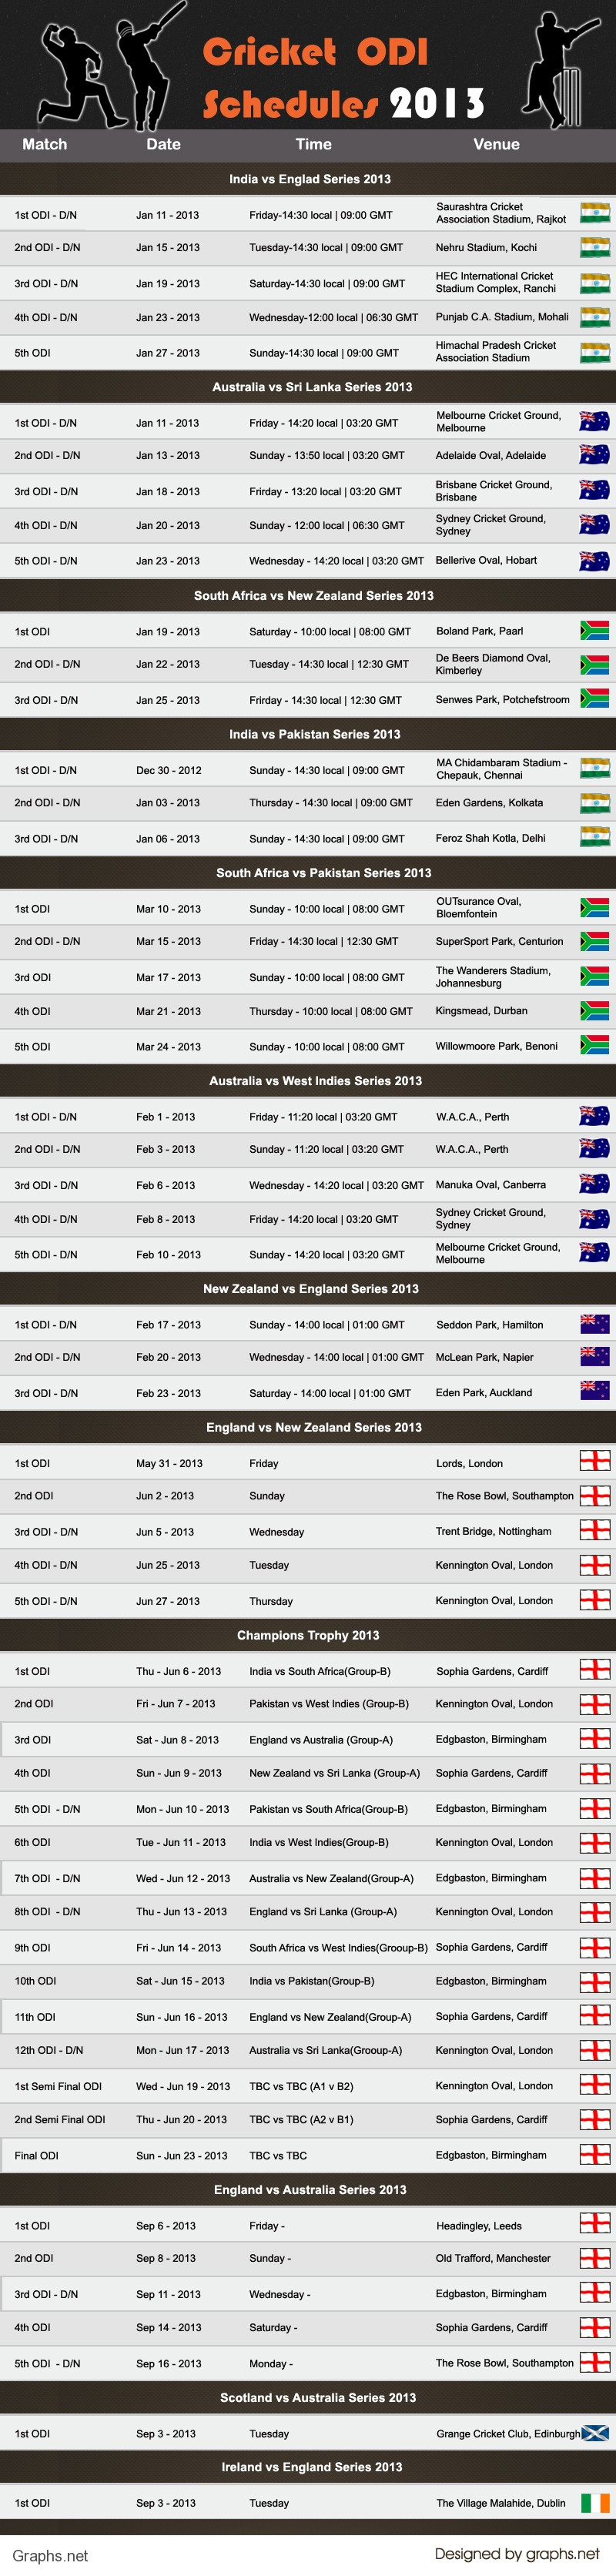 All Upcoming ODI Matches In The Year 2013